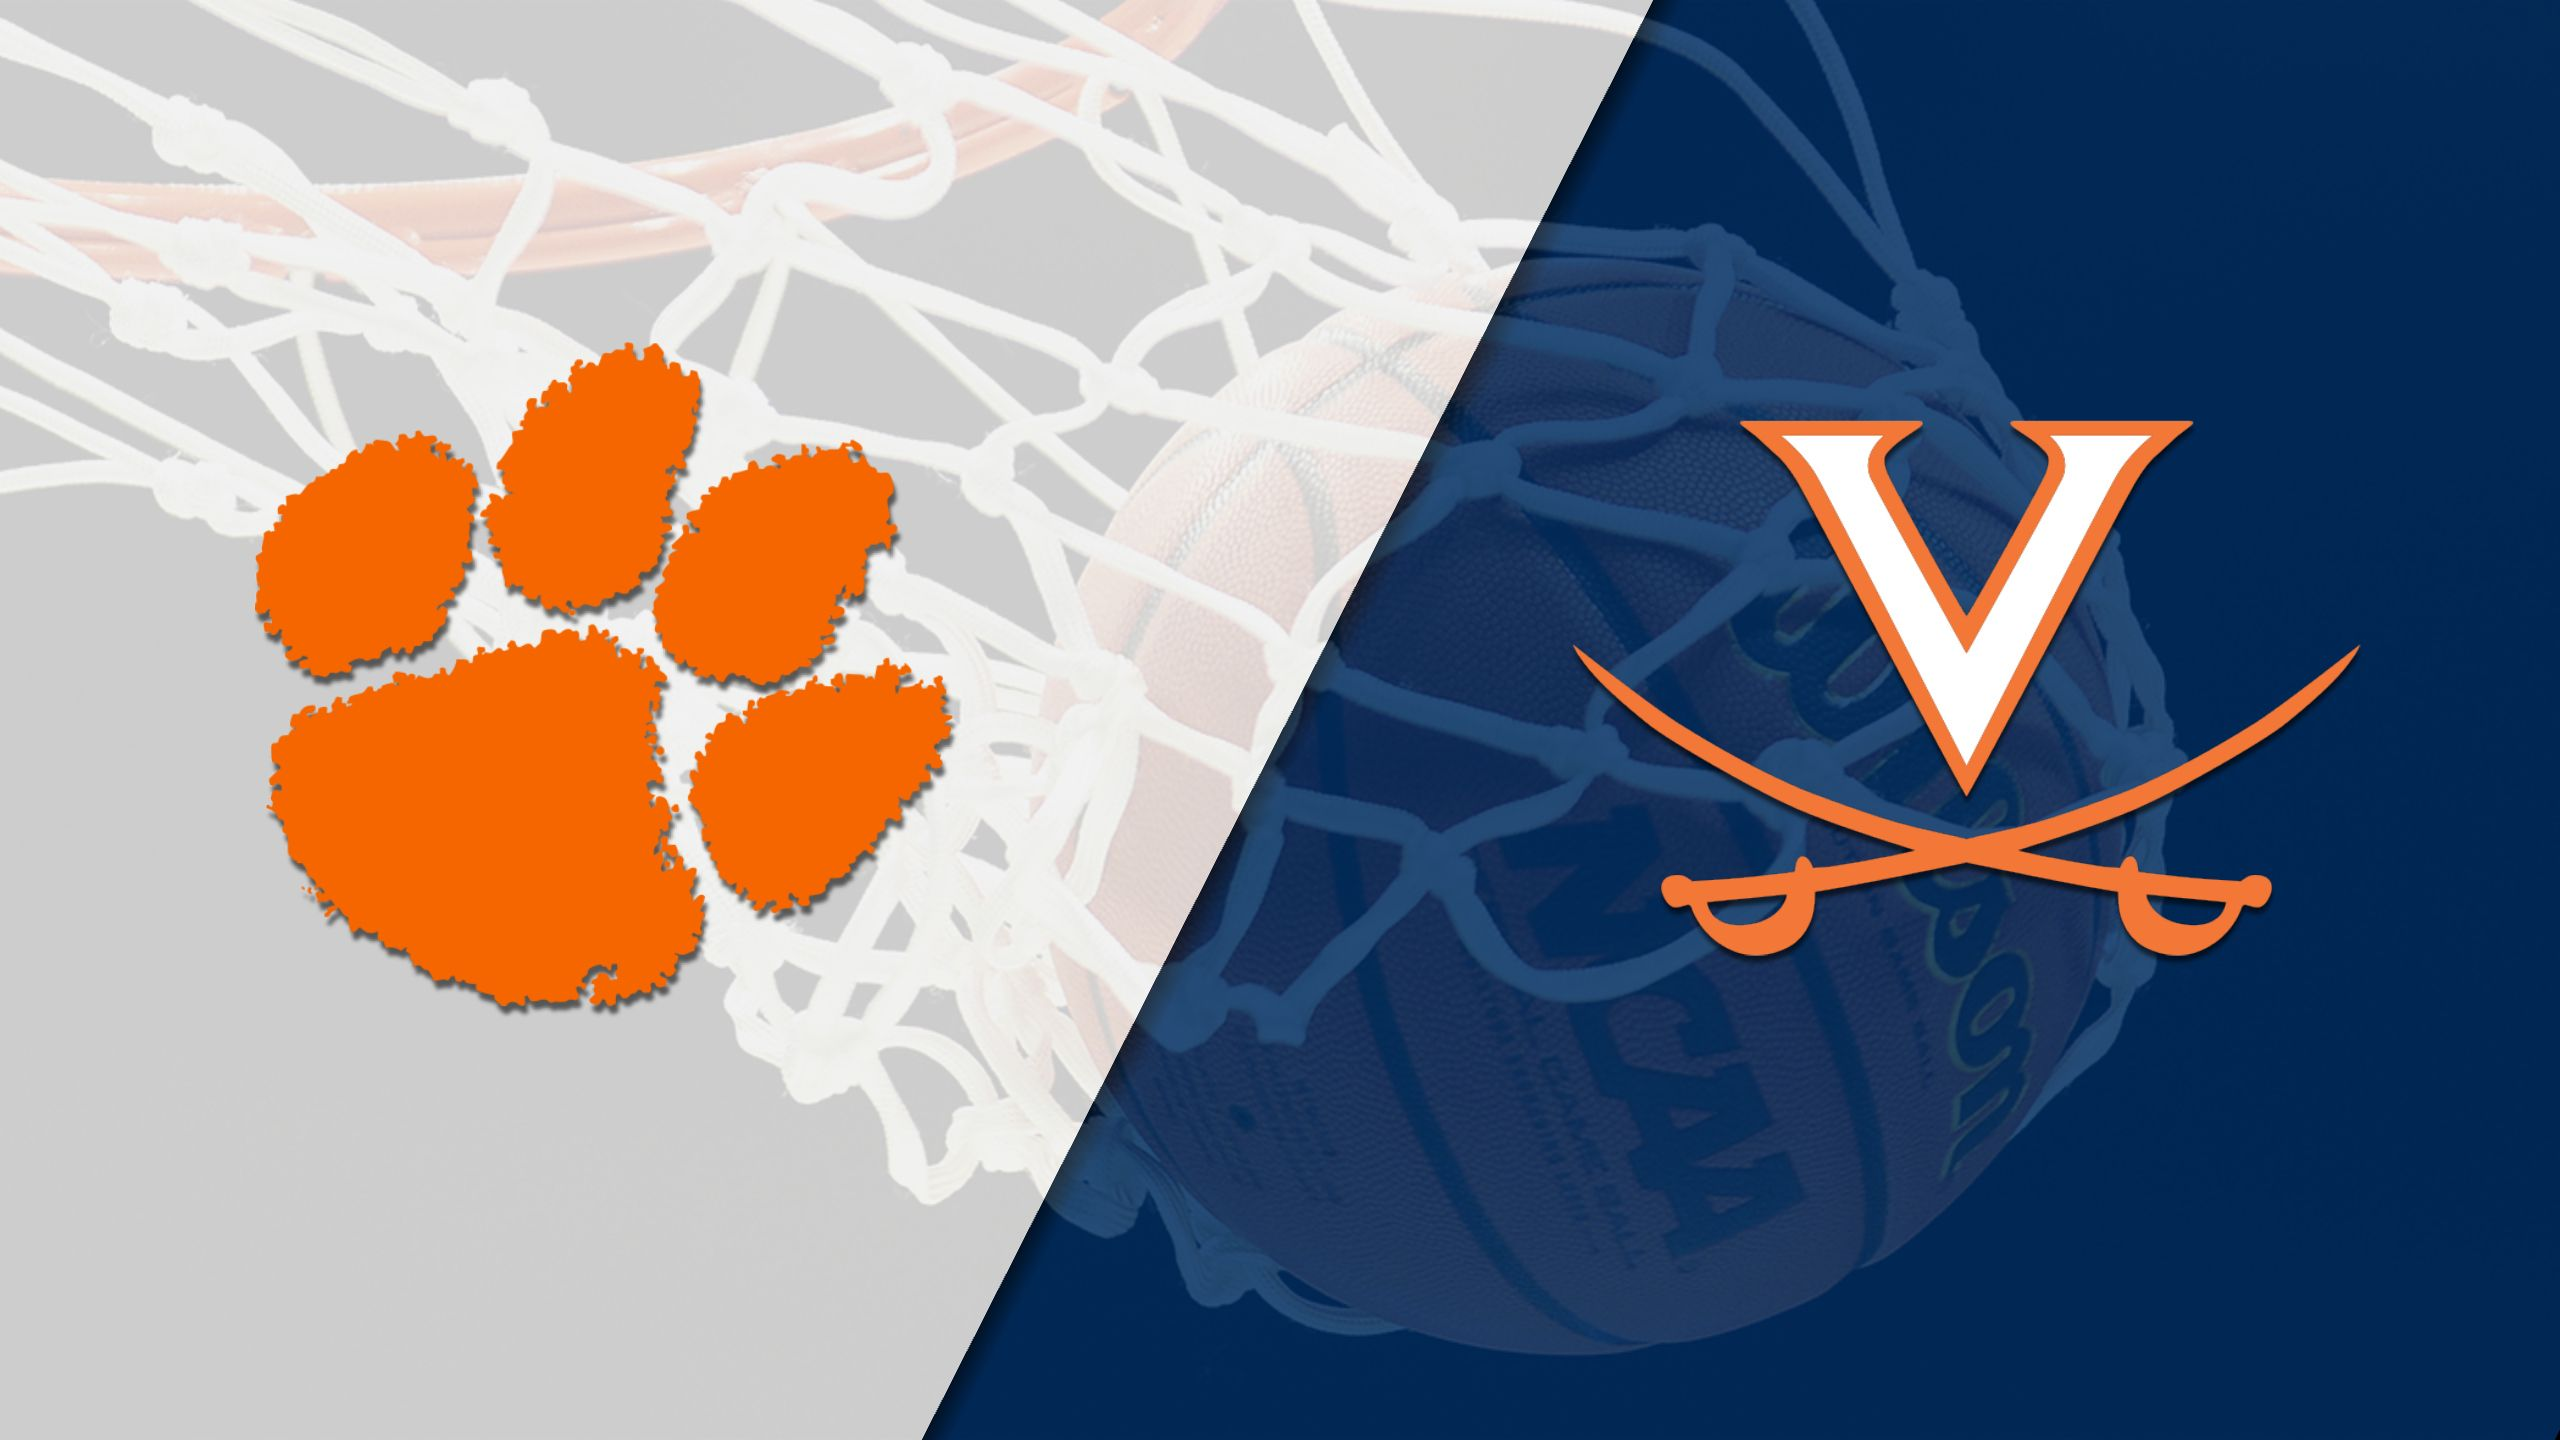 #18 Clemson vs. #2 Virginia (M Basketball)